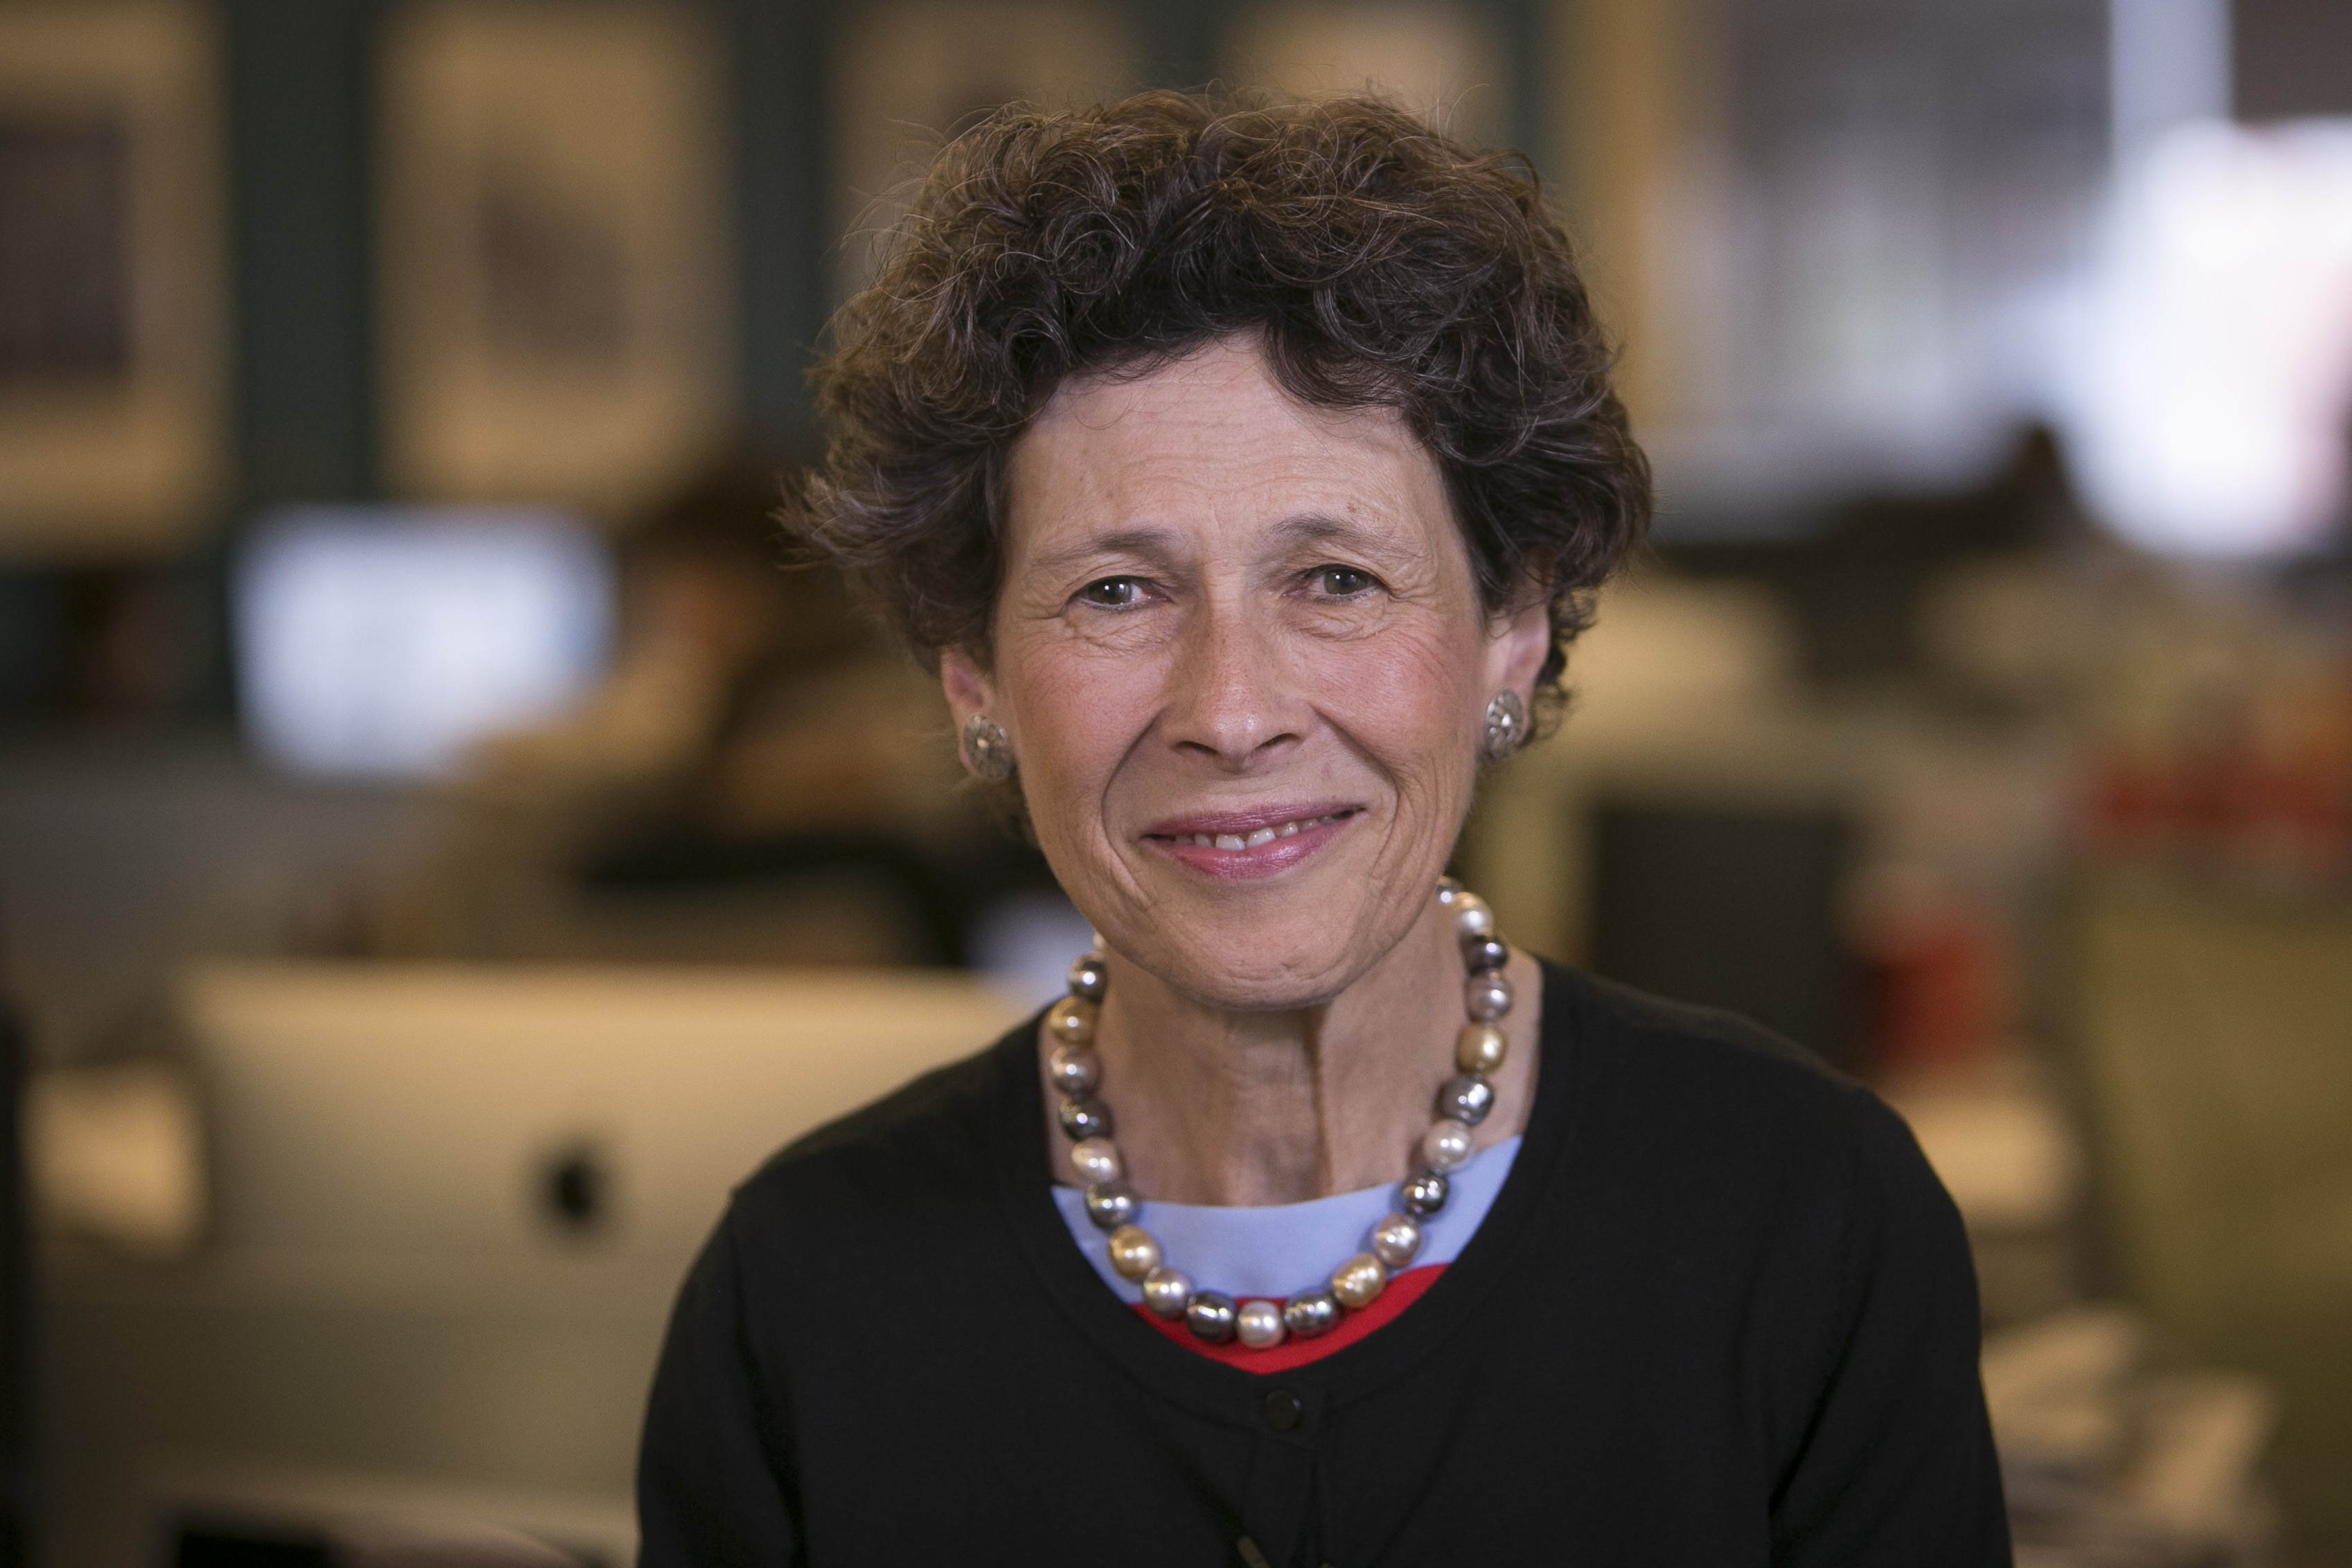 The EPA officially announced Evanston politician Debra Shore as the head of the six-state Midwest regional office in Chicago.